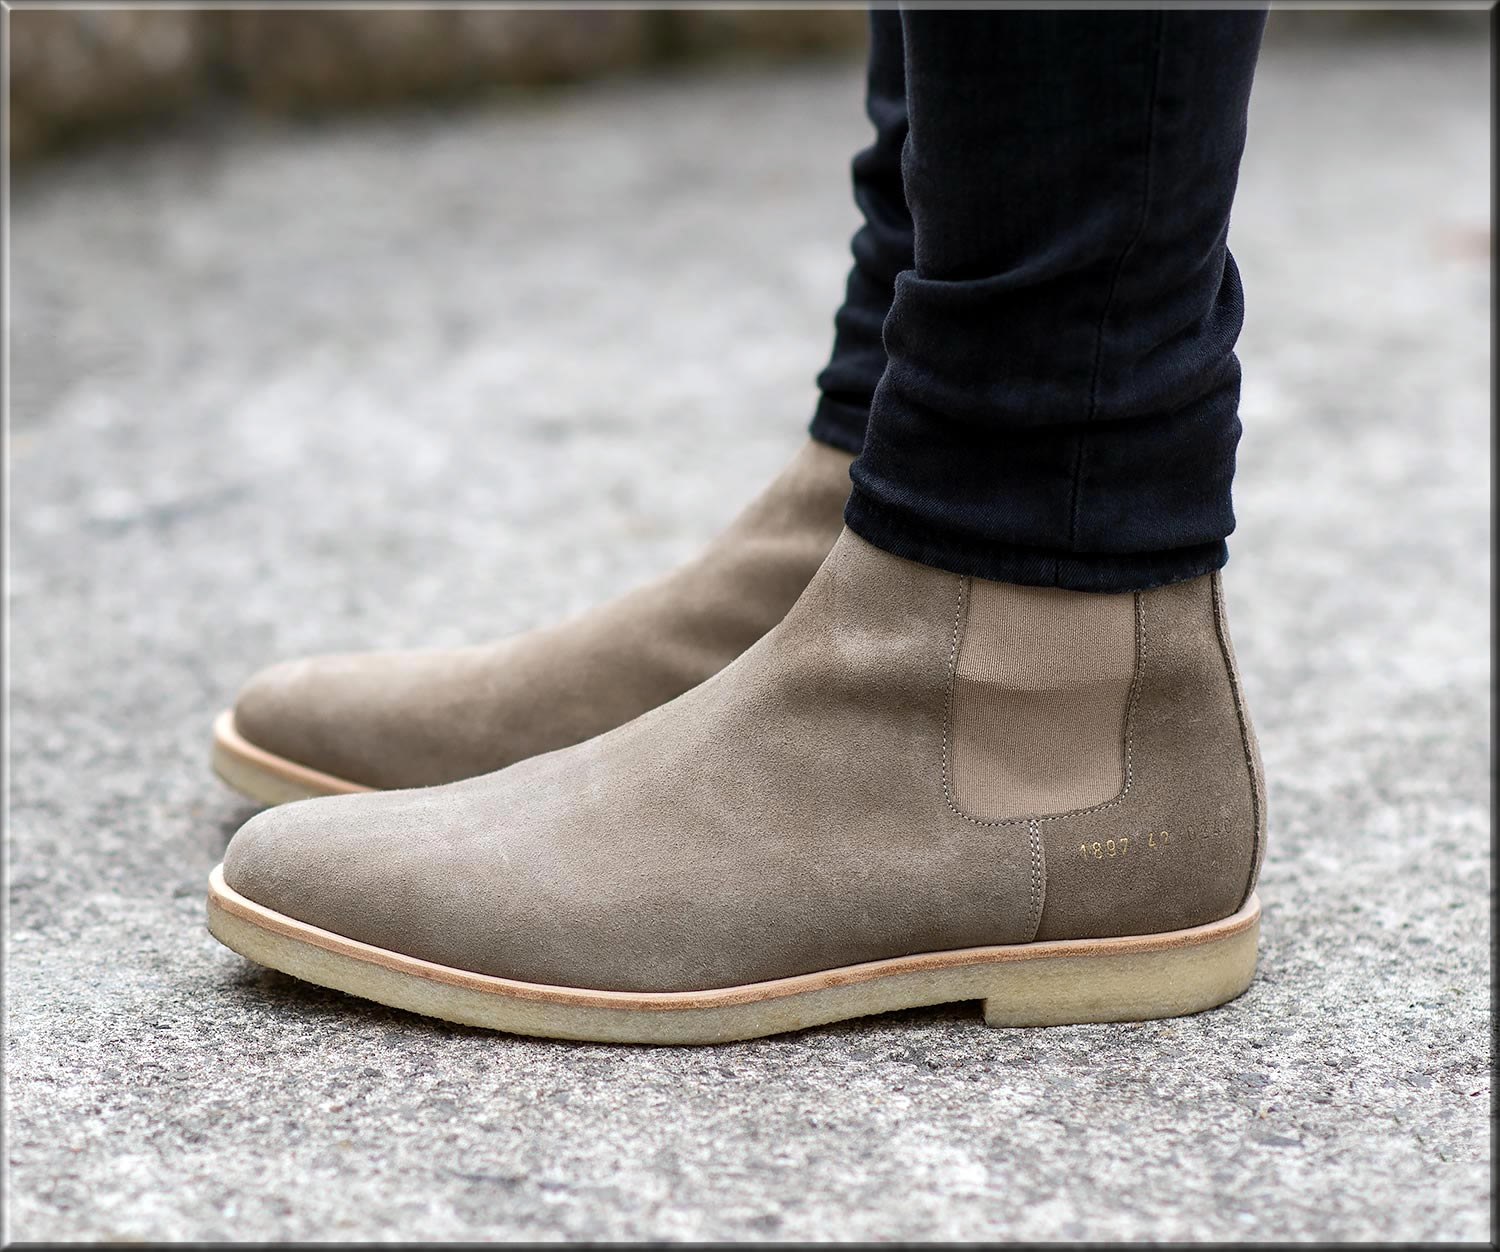 grey chelse Business Casual shoes for men